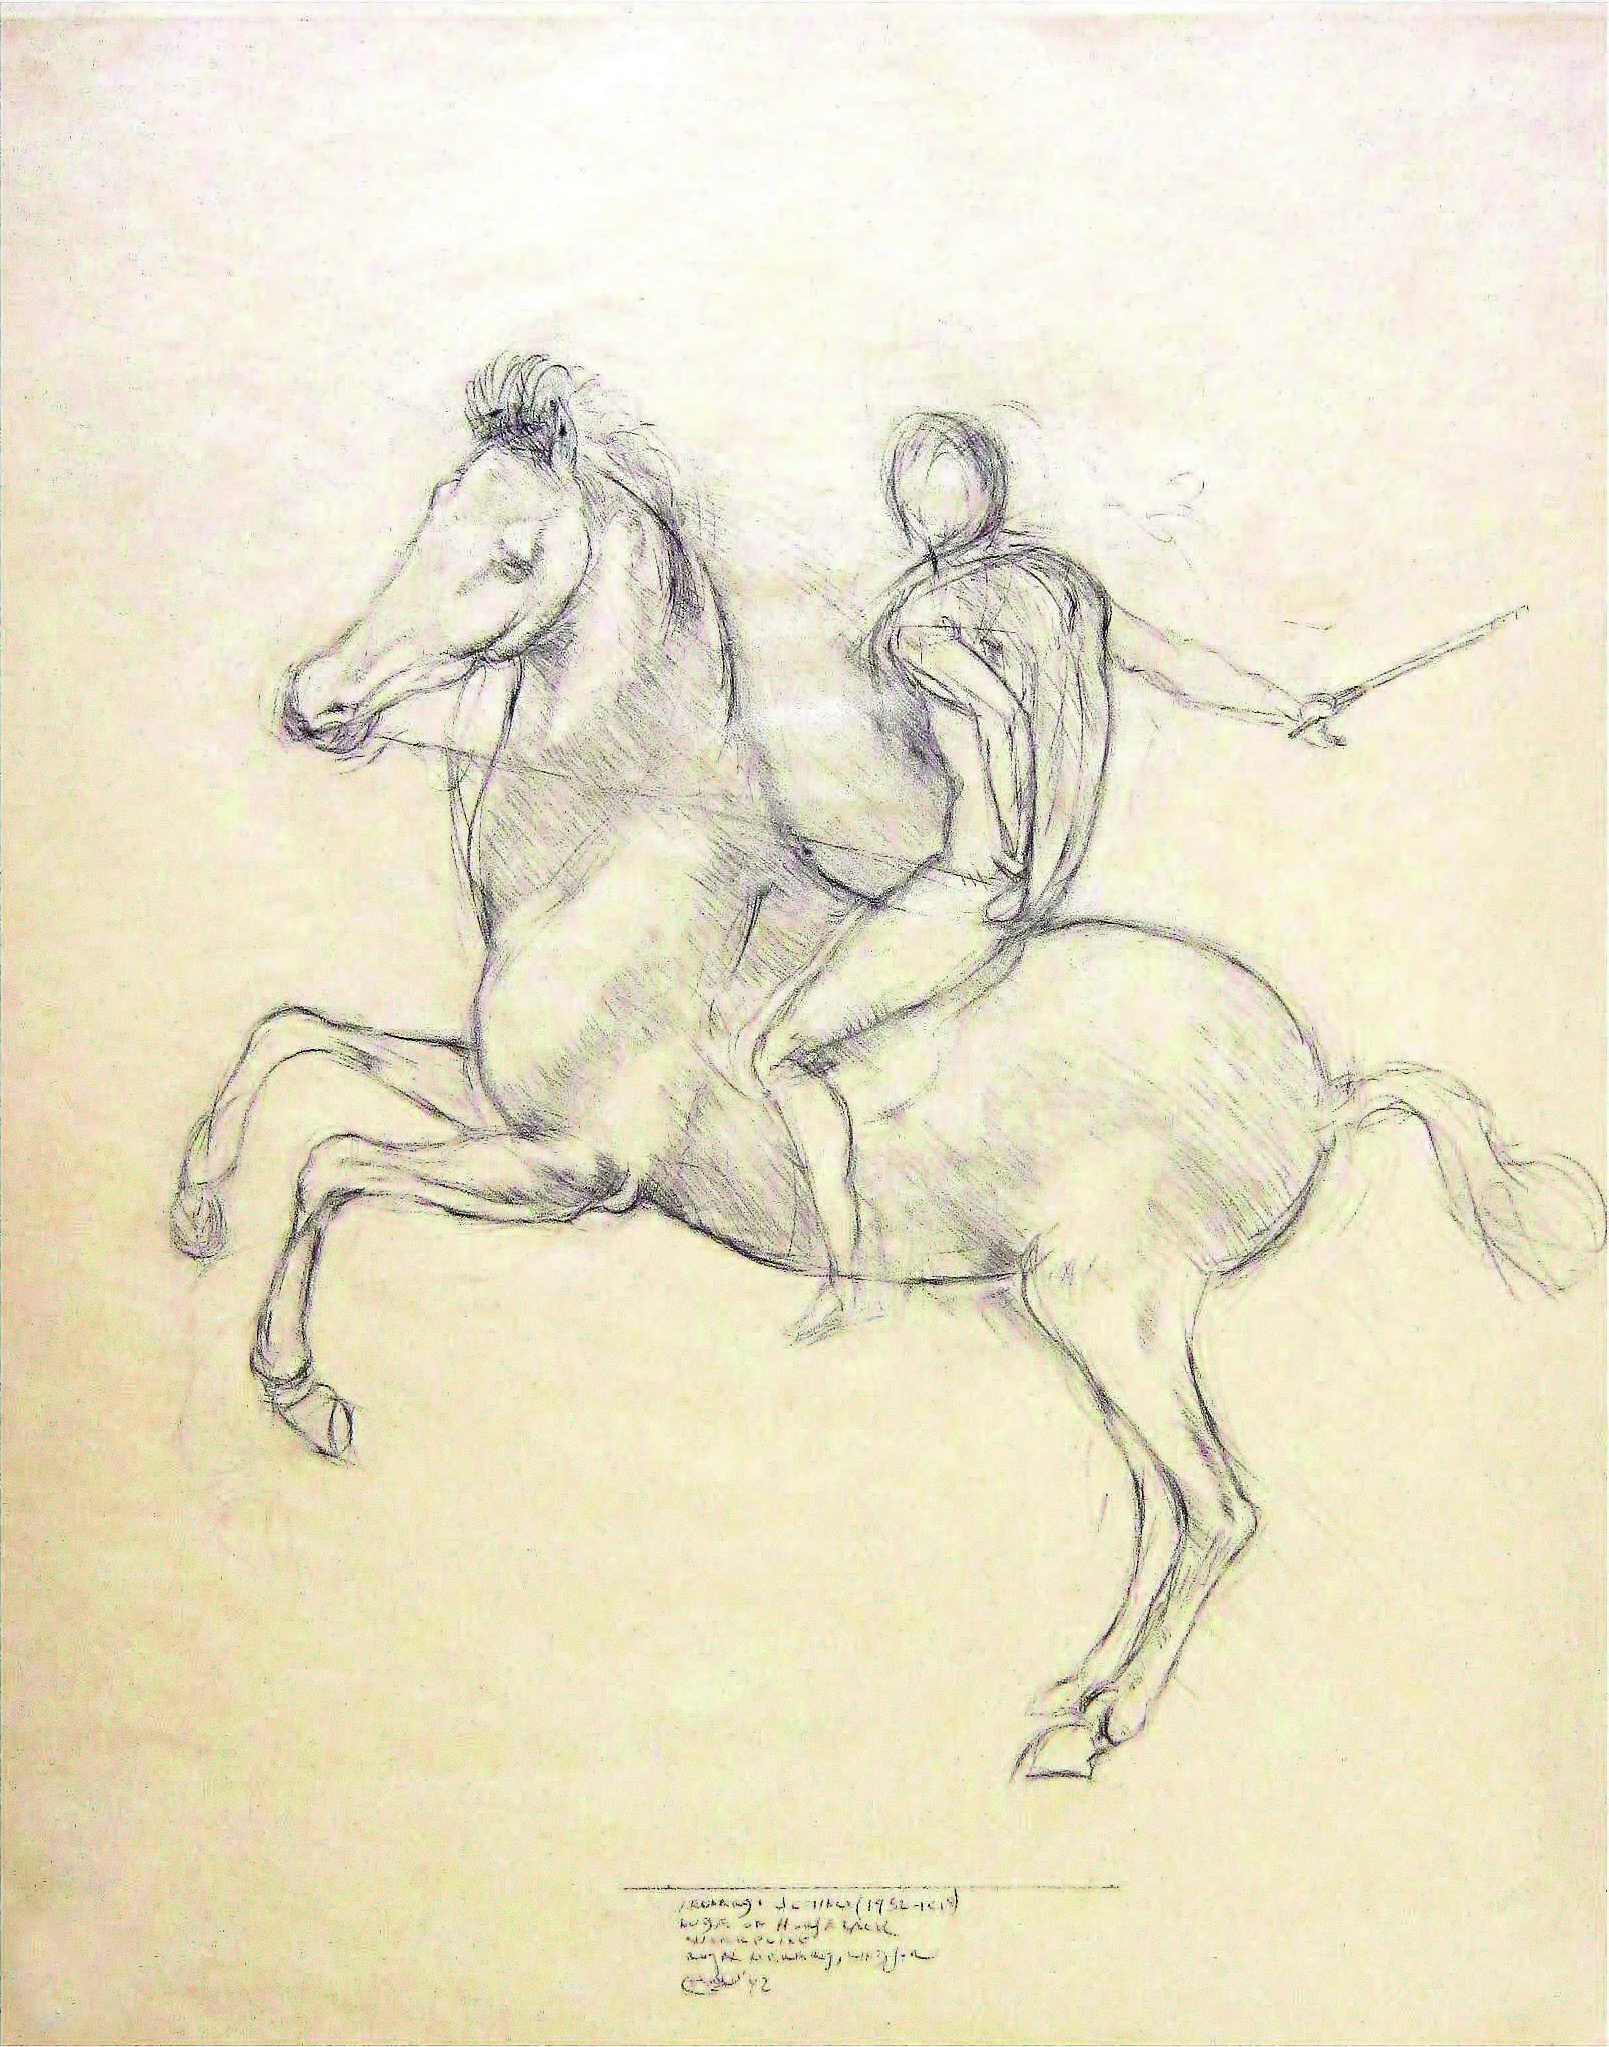 """Equestrian Warrior II"" after da Vinci (1452-1519) , 1992  Pencil on paper  13 1/2 × 10 in   Inquire"